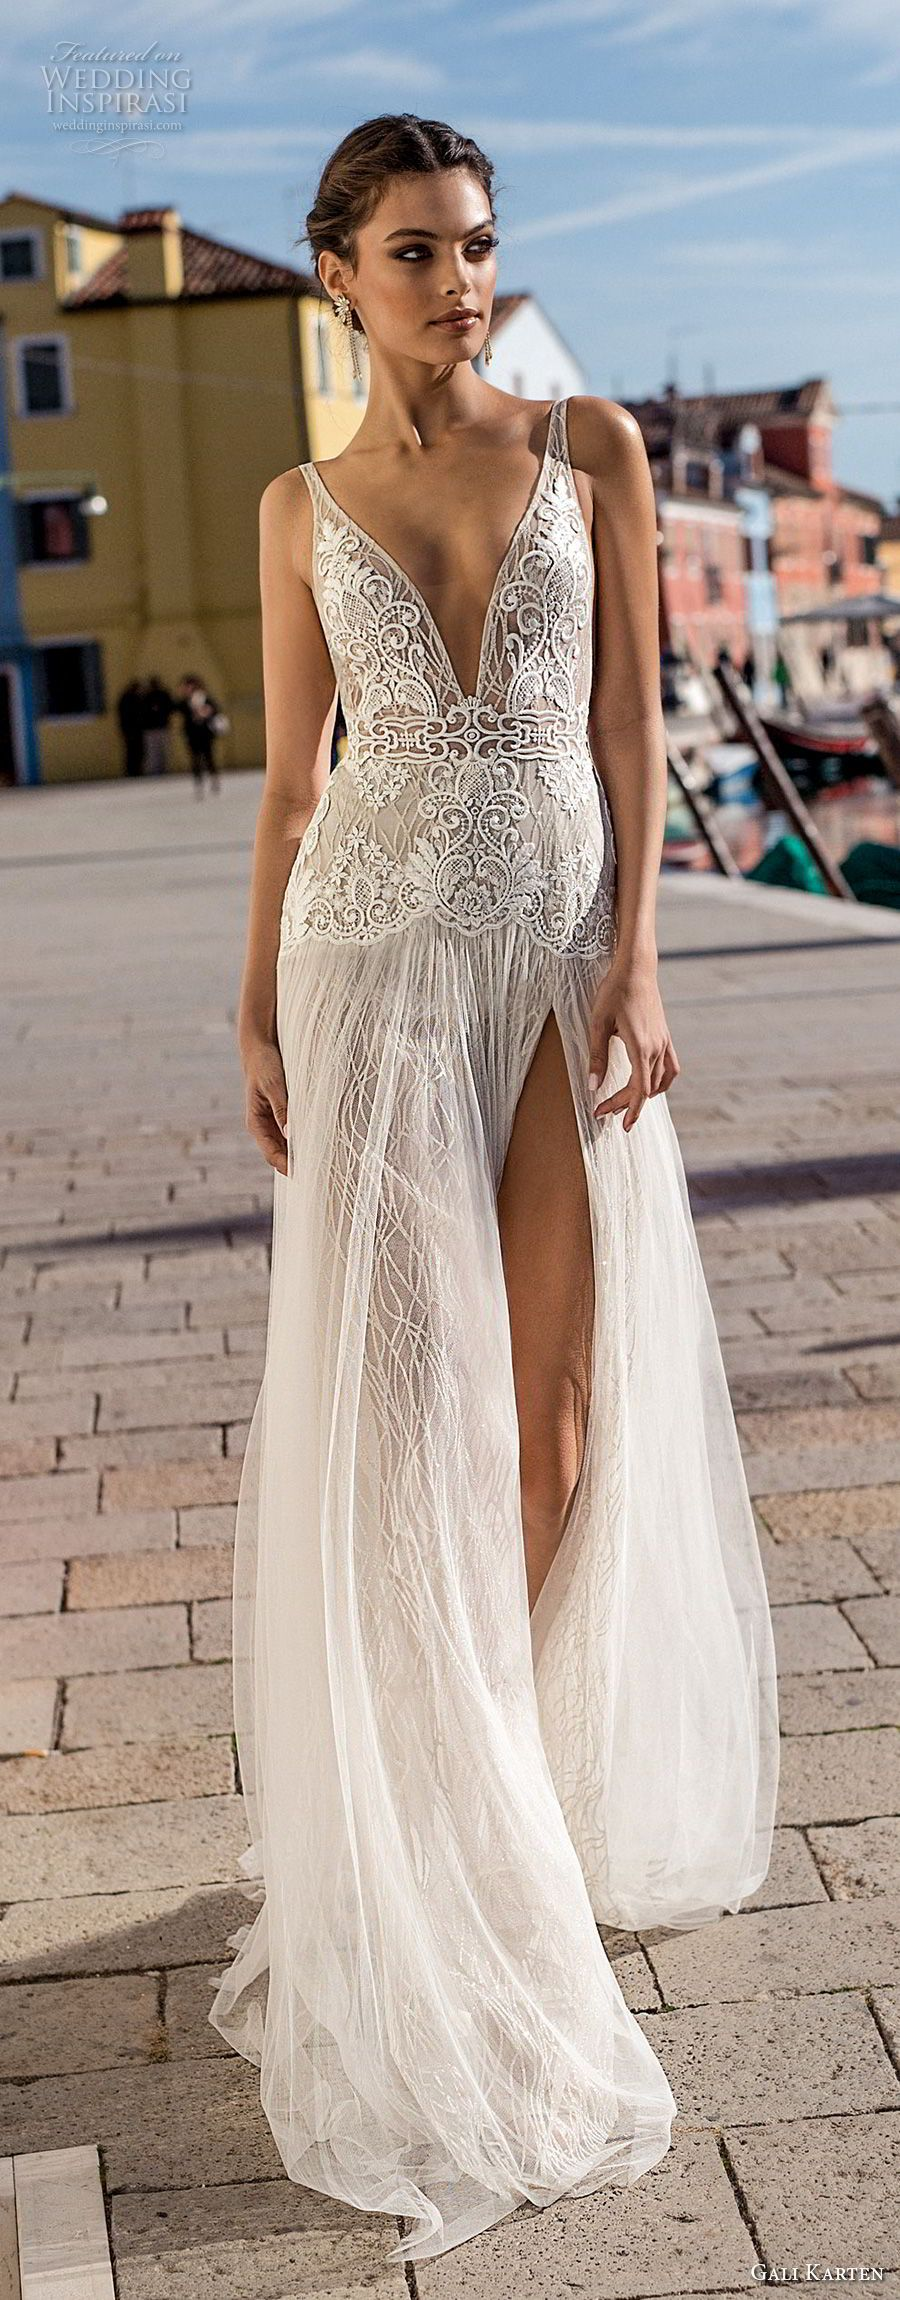 Wedding dress high neck open back  Gali Karten  Wedding Dresses u First Look at the ucBuranoud Bridal